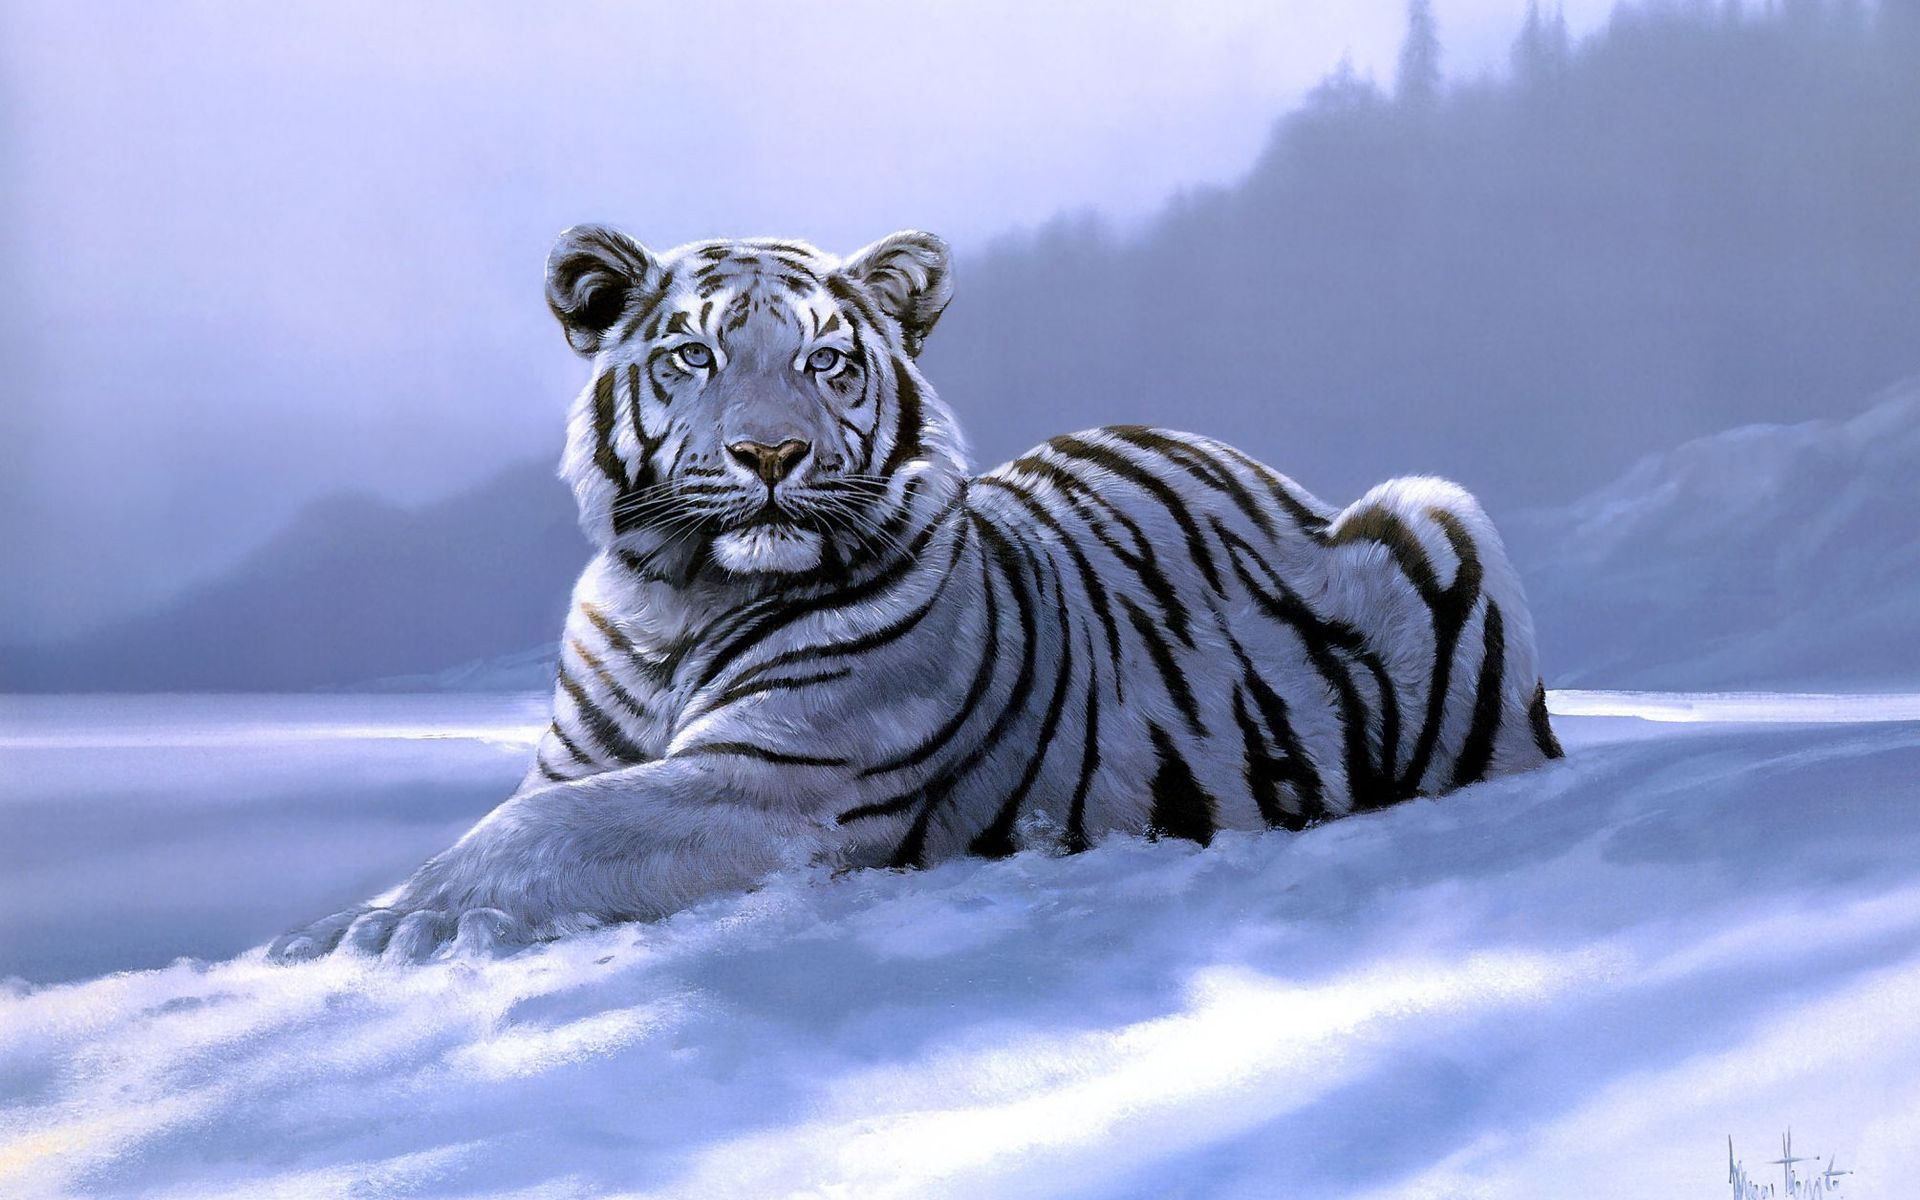 white tiger wallpaper desktop which is under the tiger wallpapers 1920x1200